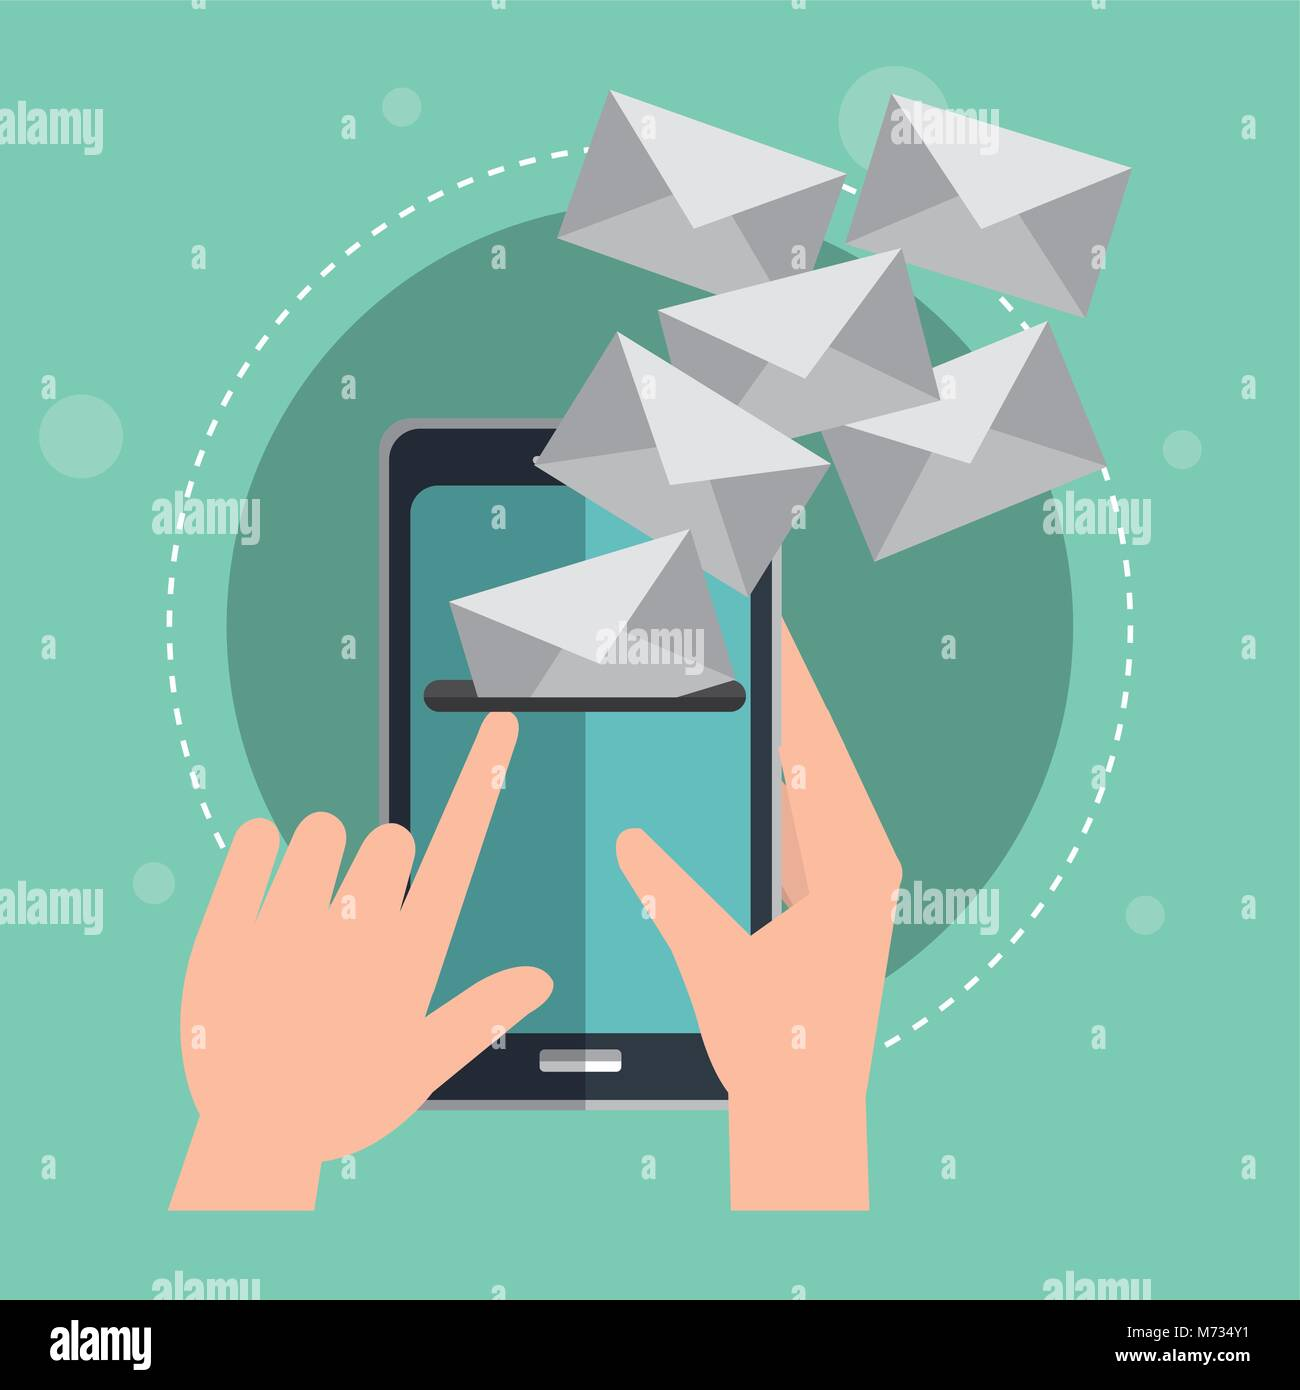 smartphone with emails envelopes - Stock Image